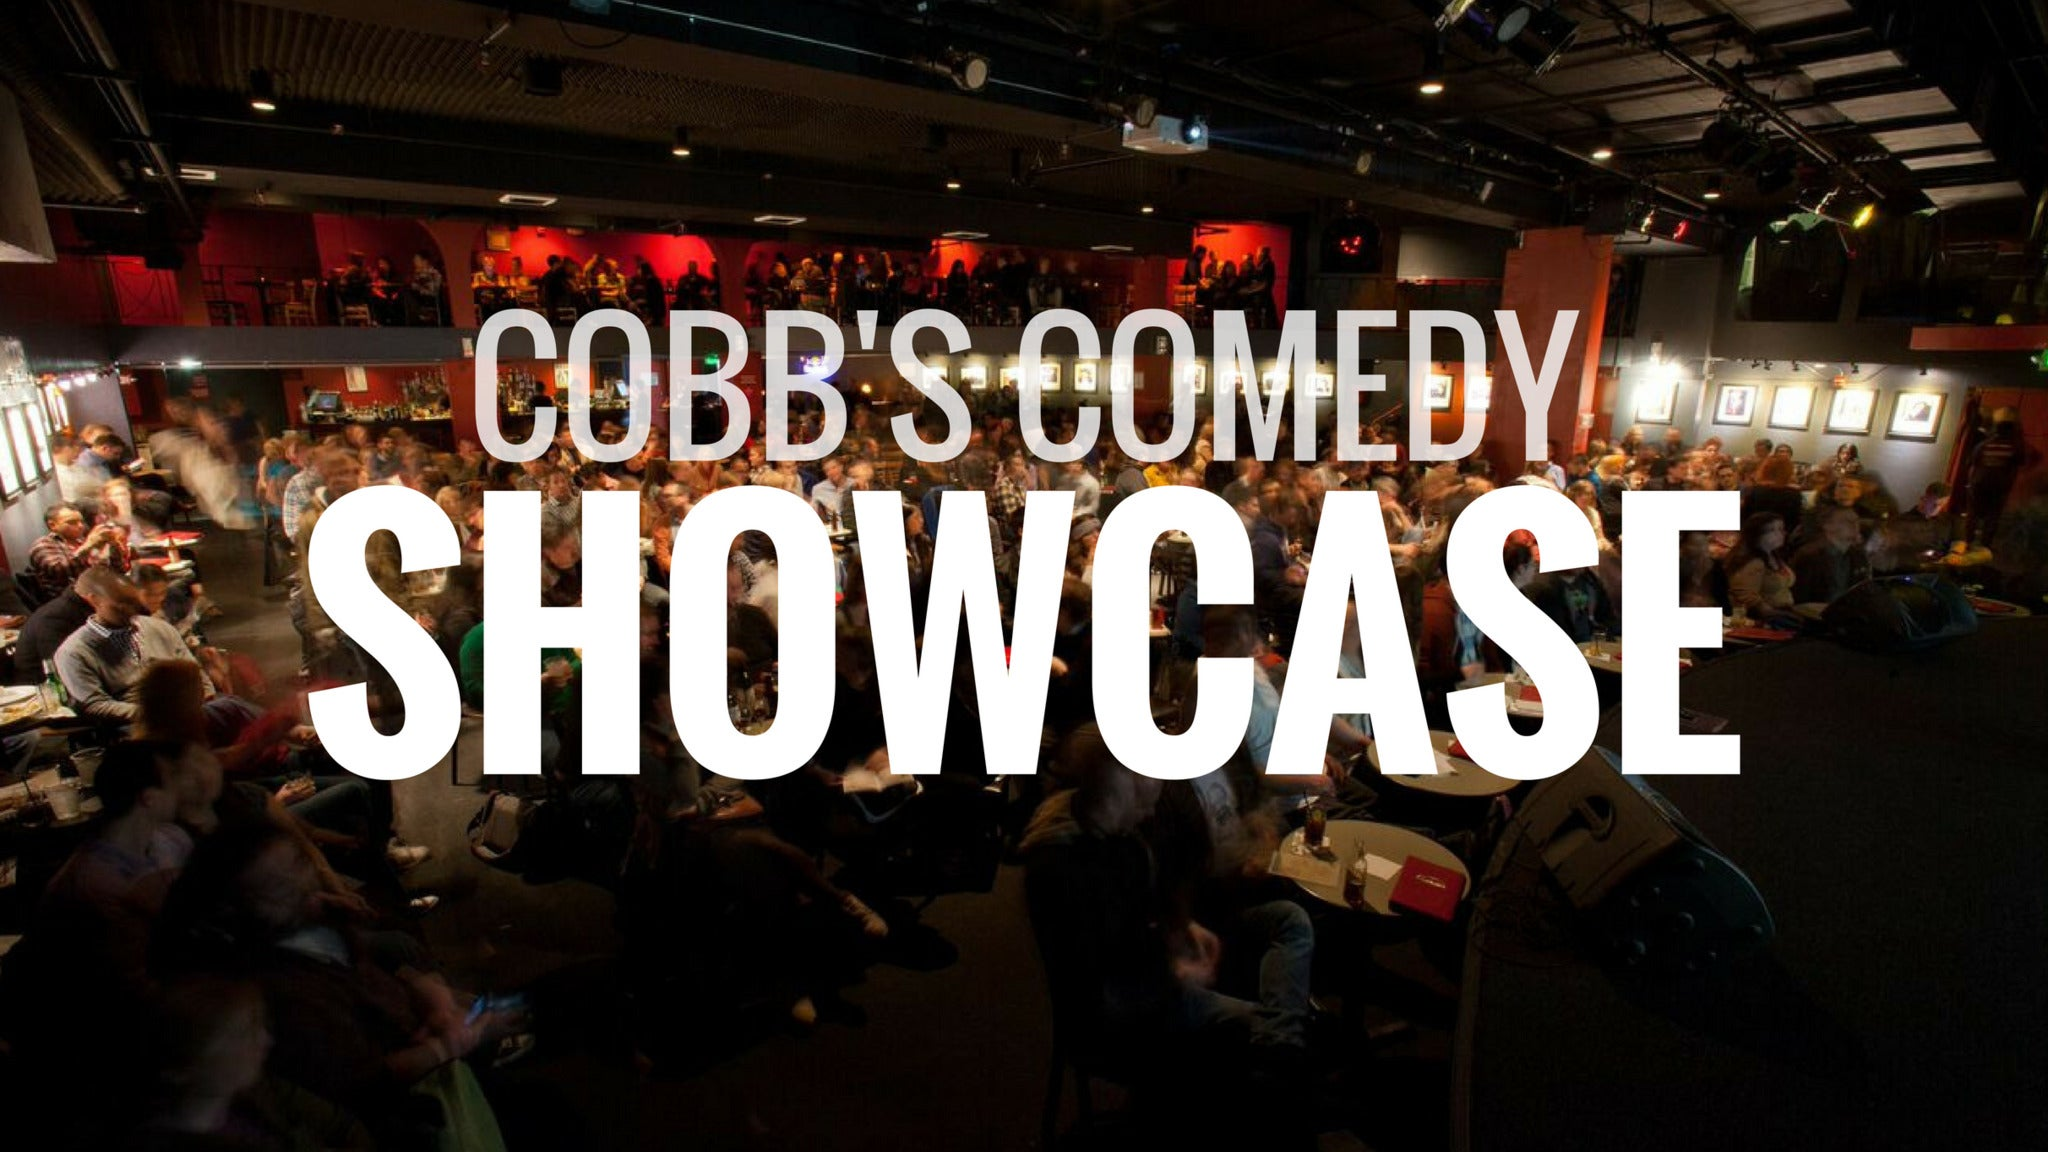 Cobb's Comedy Showcase at Cobb's Comedy Club